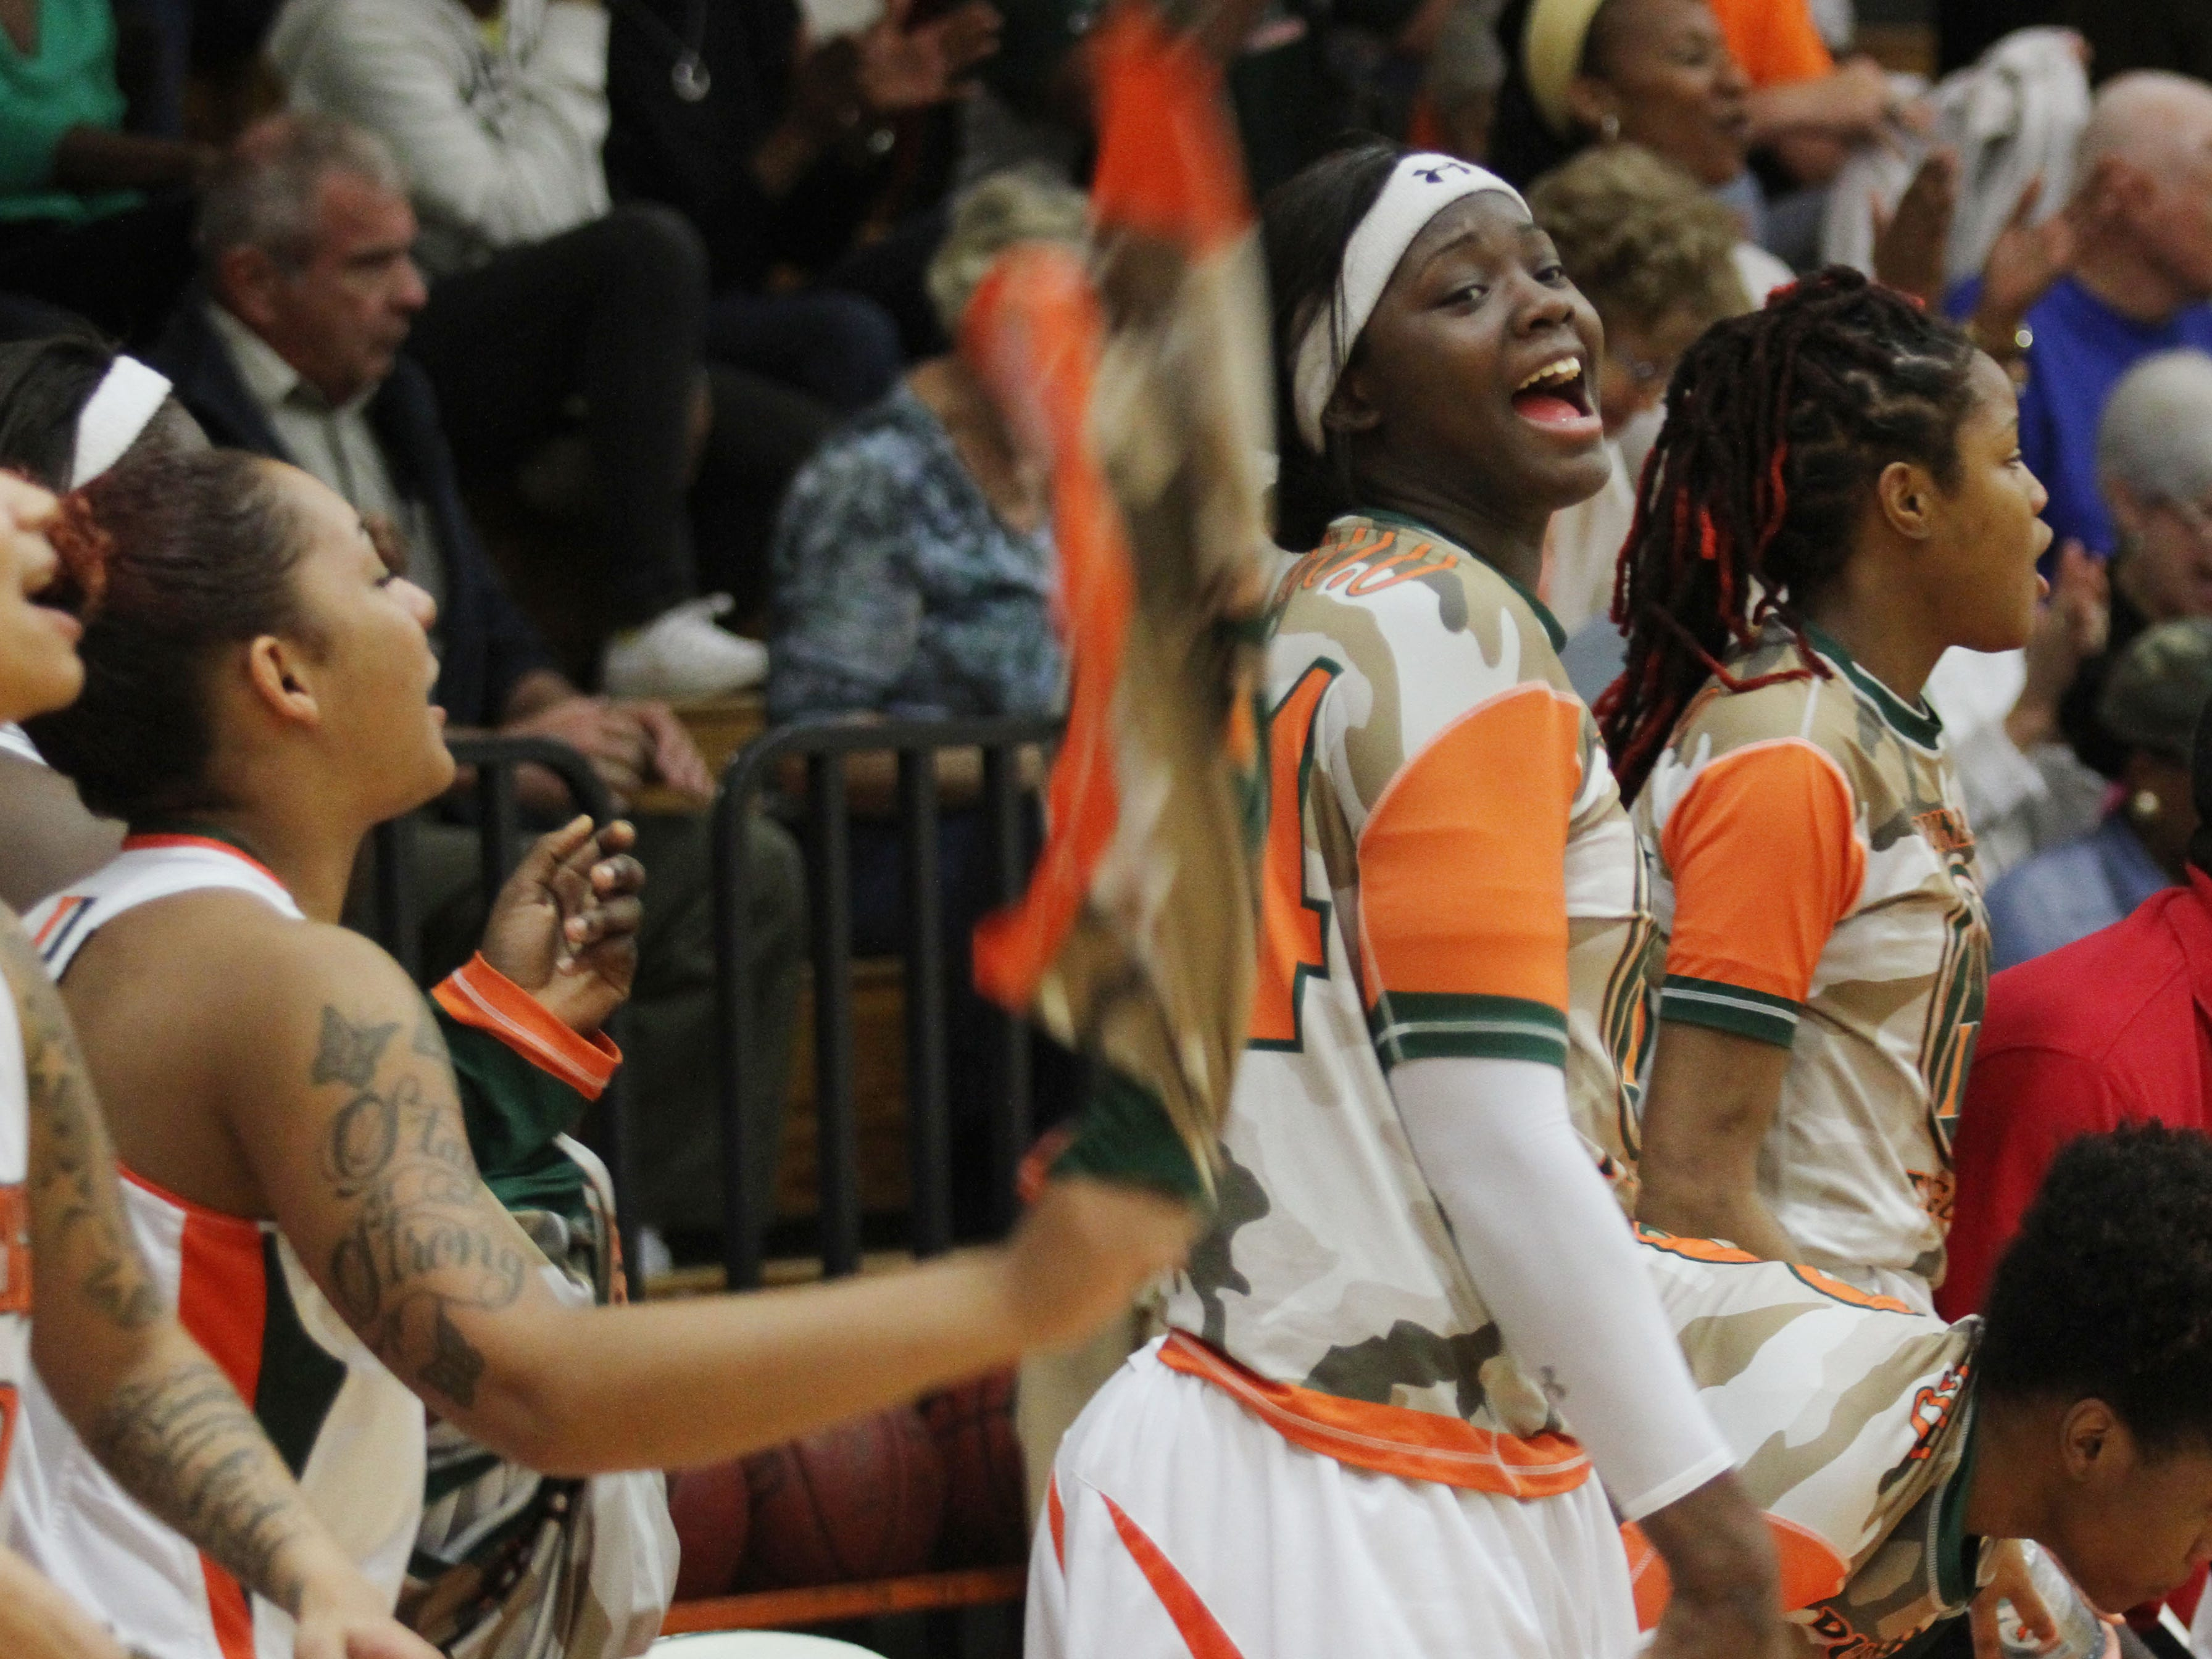 Dunbar's Jamiah Bland, center, celebrates along with other Lady Tigers after defeating Tampa Catholic during the Region 4A-3 girls basketball championship game at Dunbar High School on Friday night.